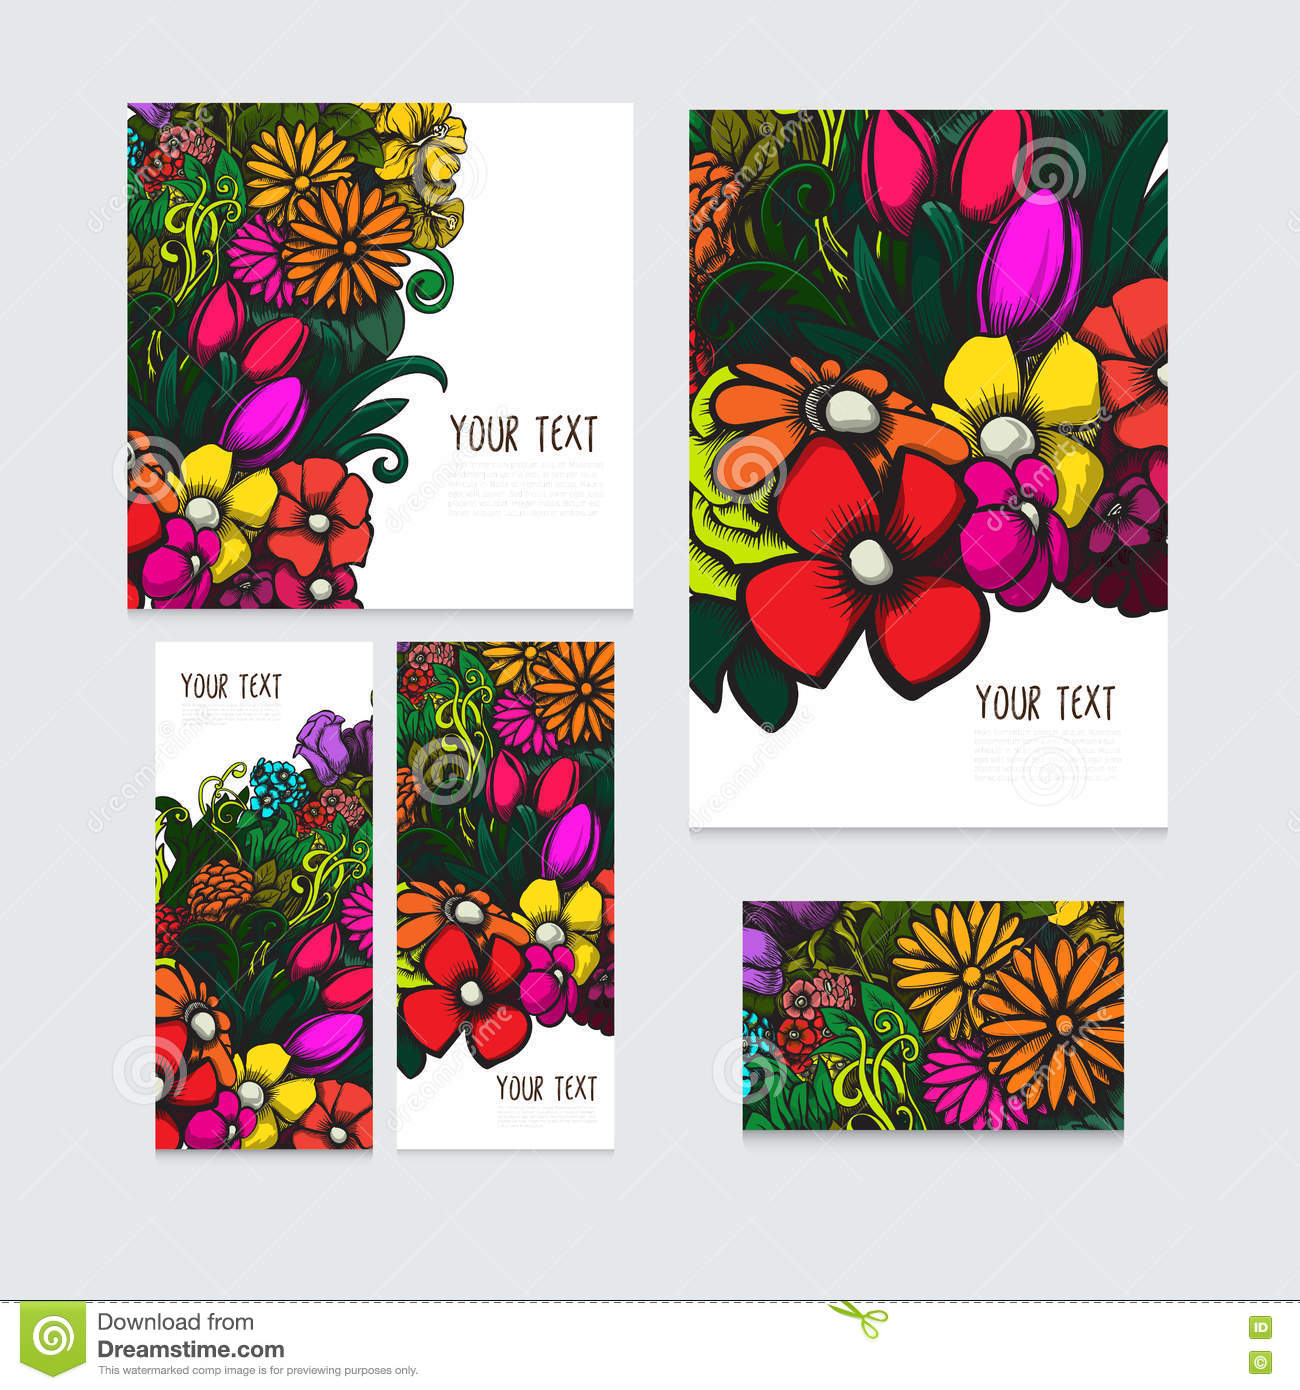 flowers background.html